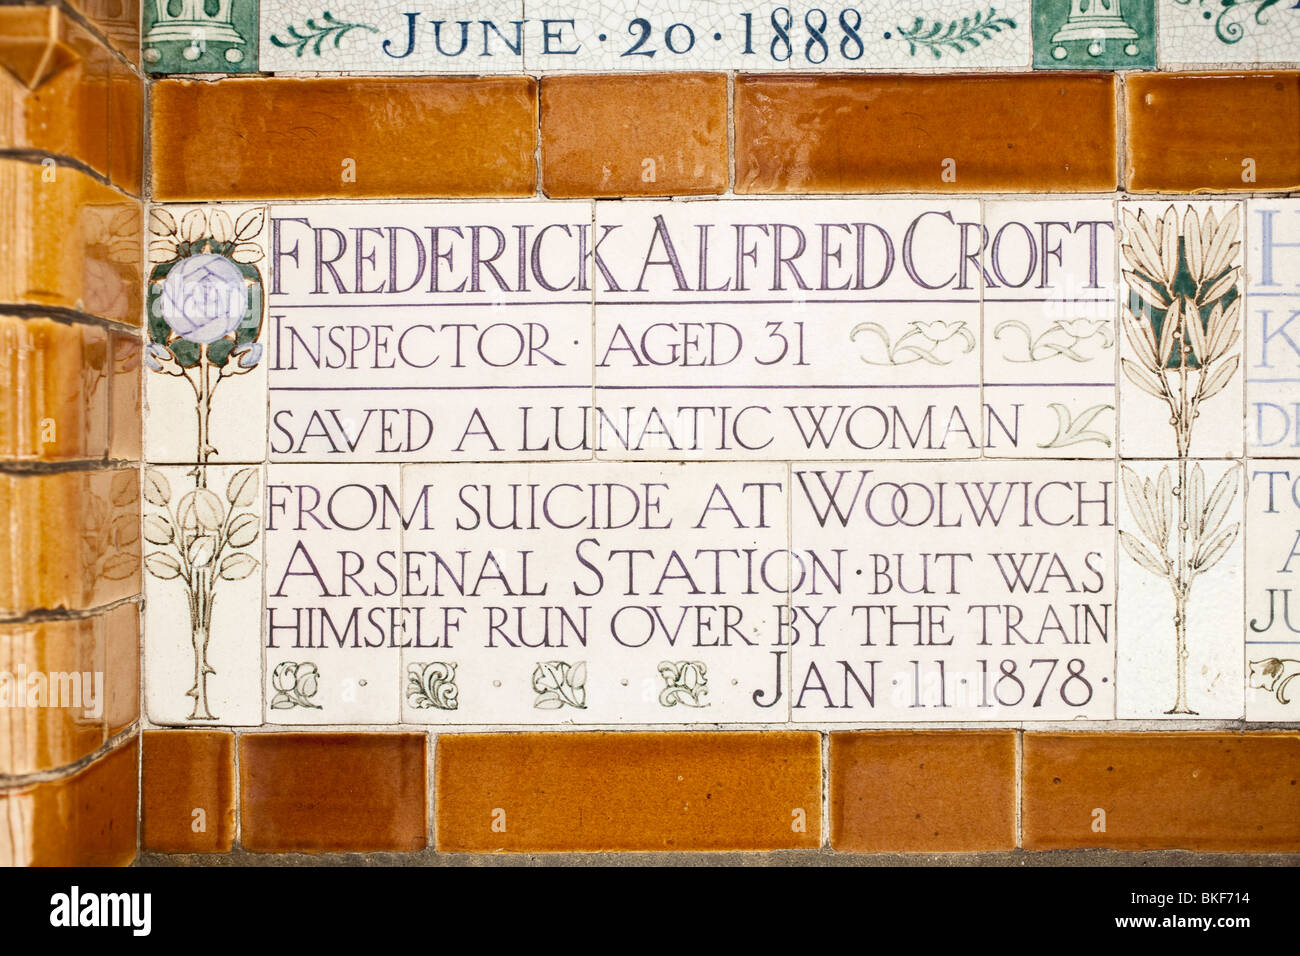 Memorial plaque to Frederick Alfred Croft. Postmans Park, The City, London, England, UK - Stock Image